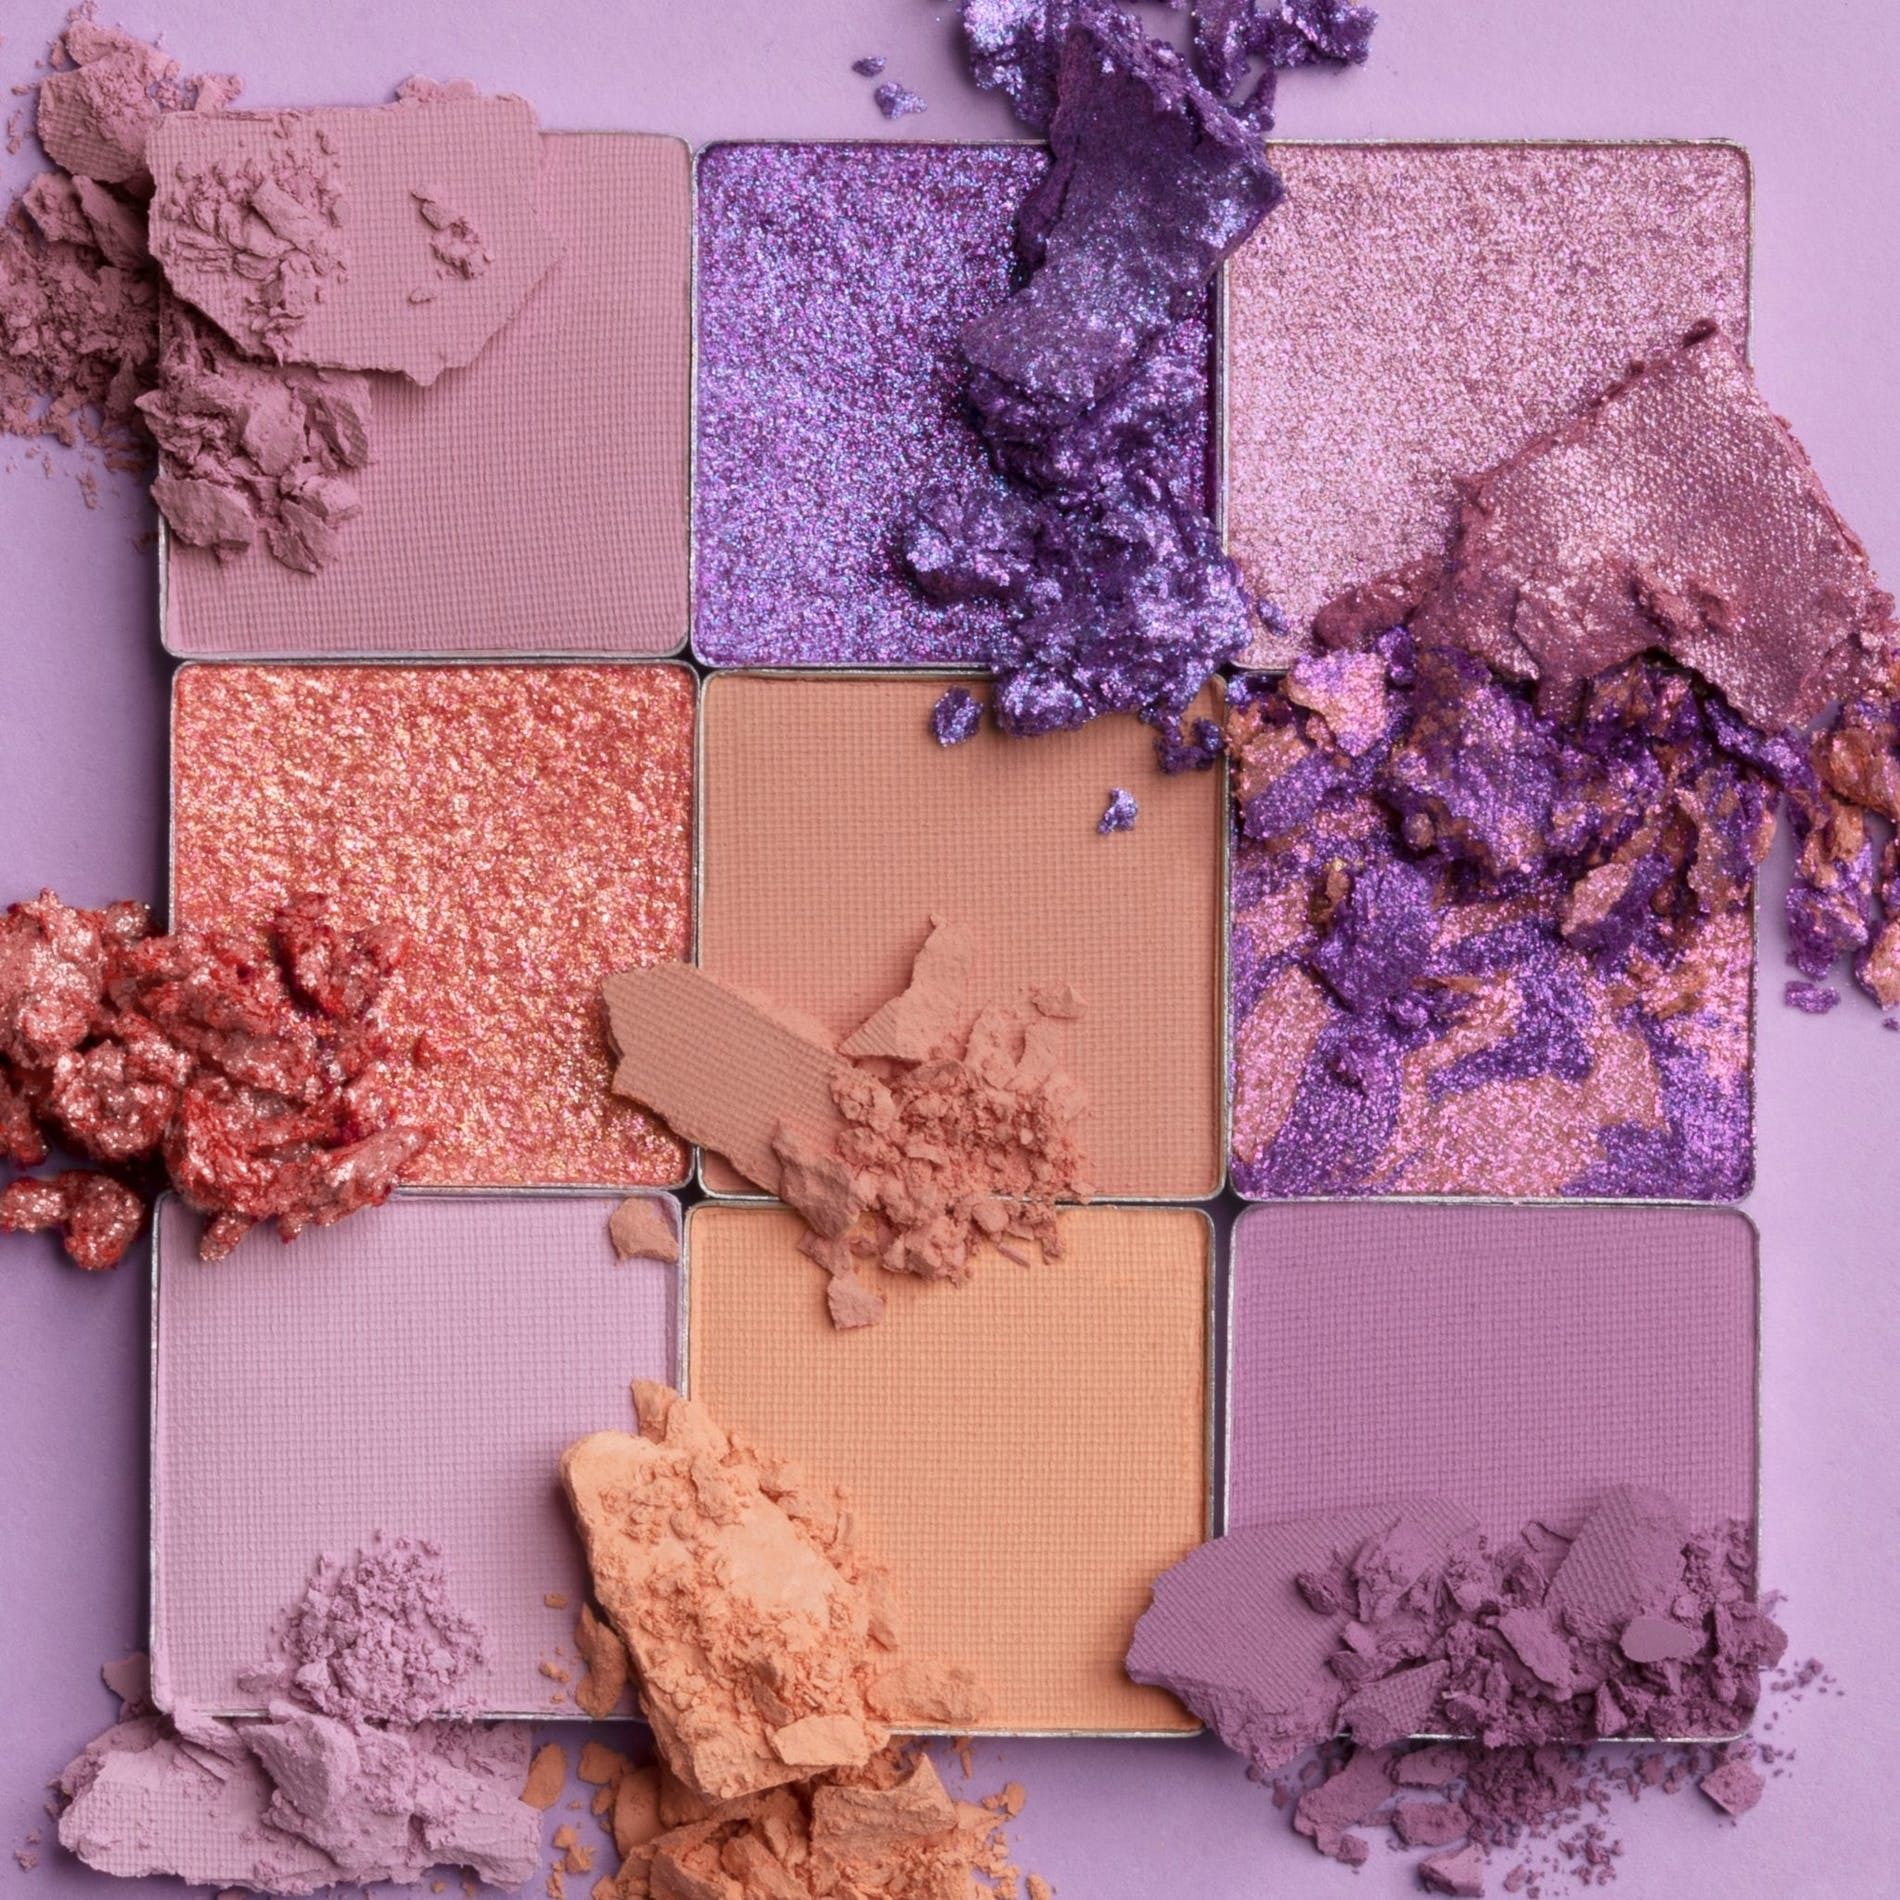 Huda Beauty Lilac Obsessions Palette